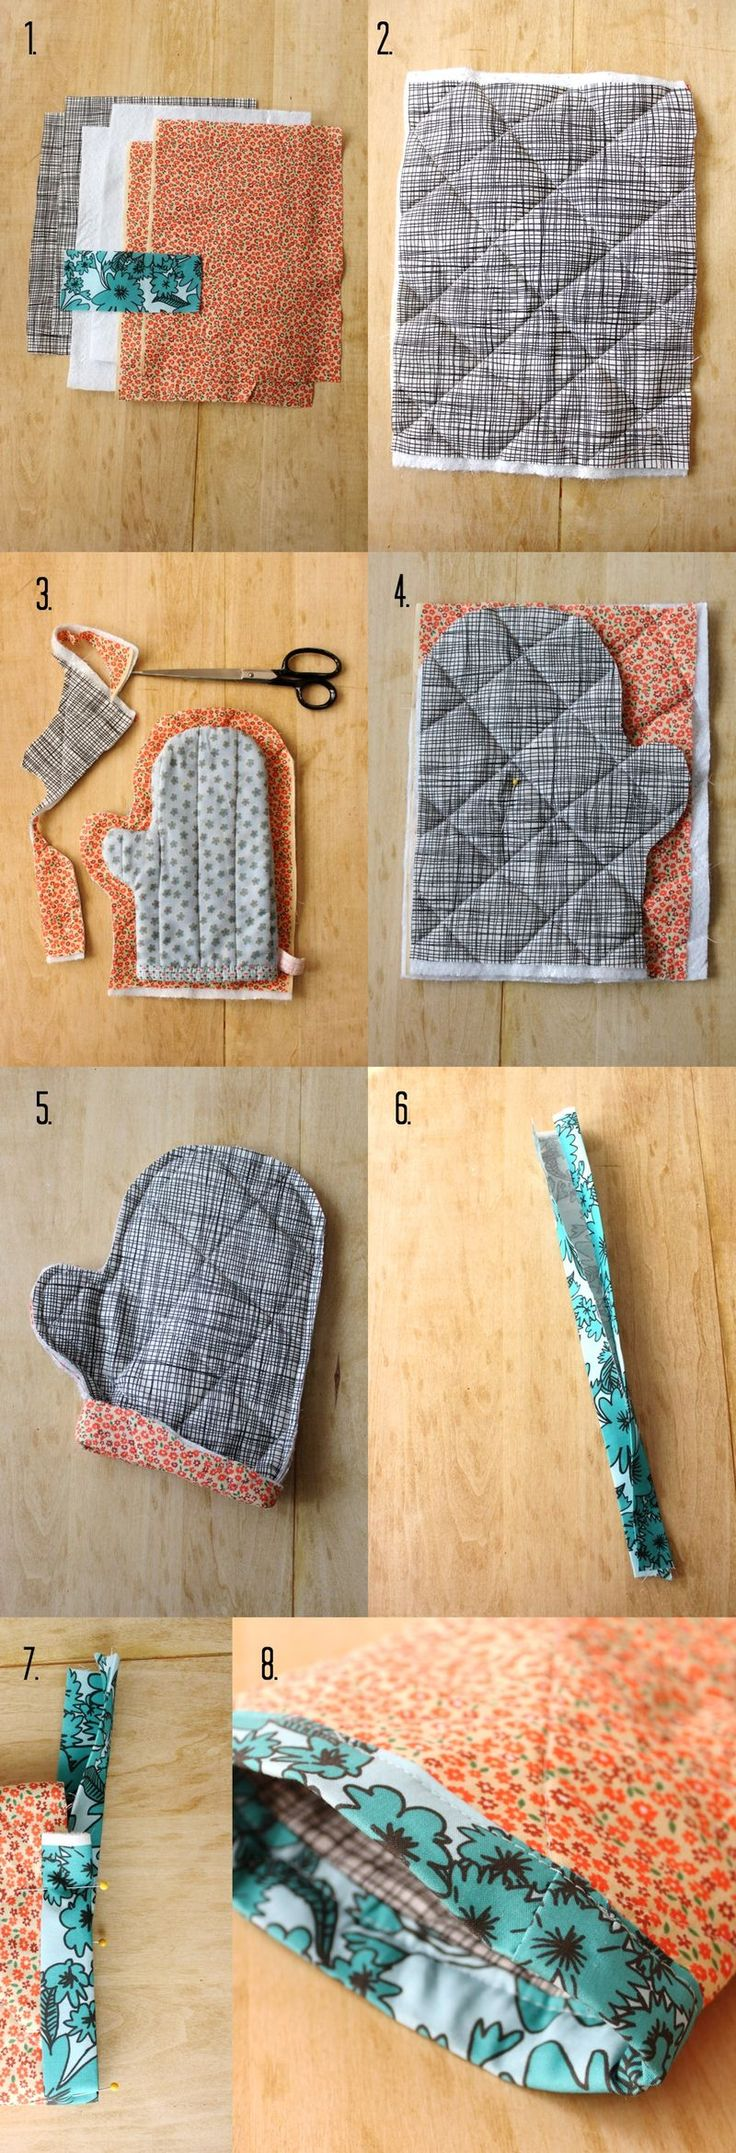 Make Your Own Oven Mitts.